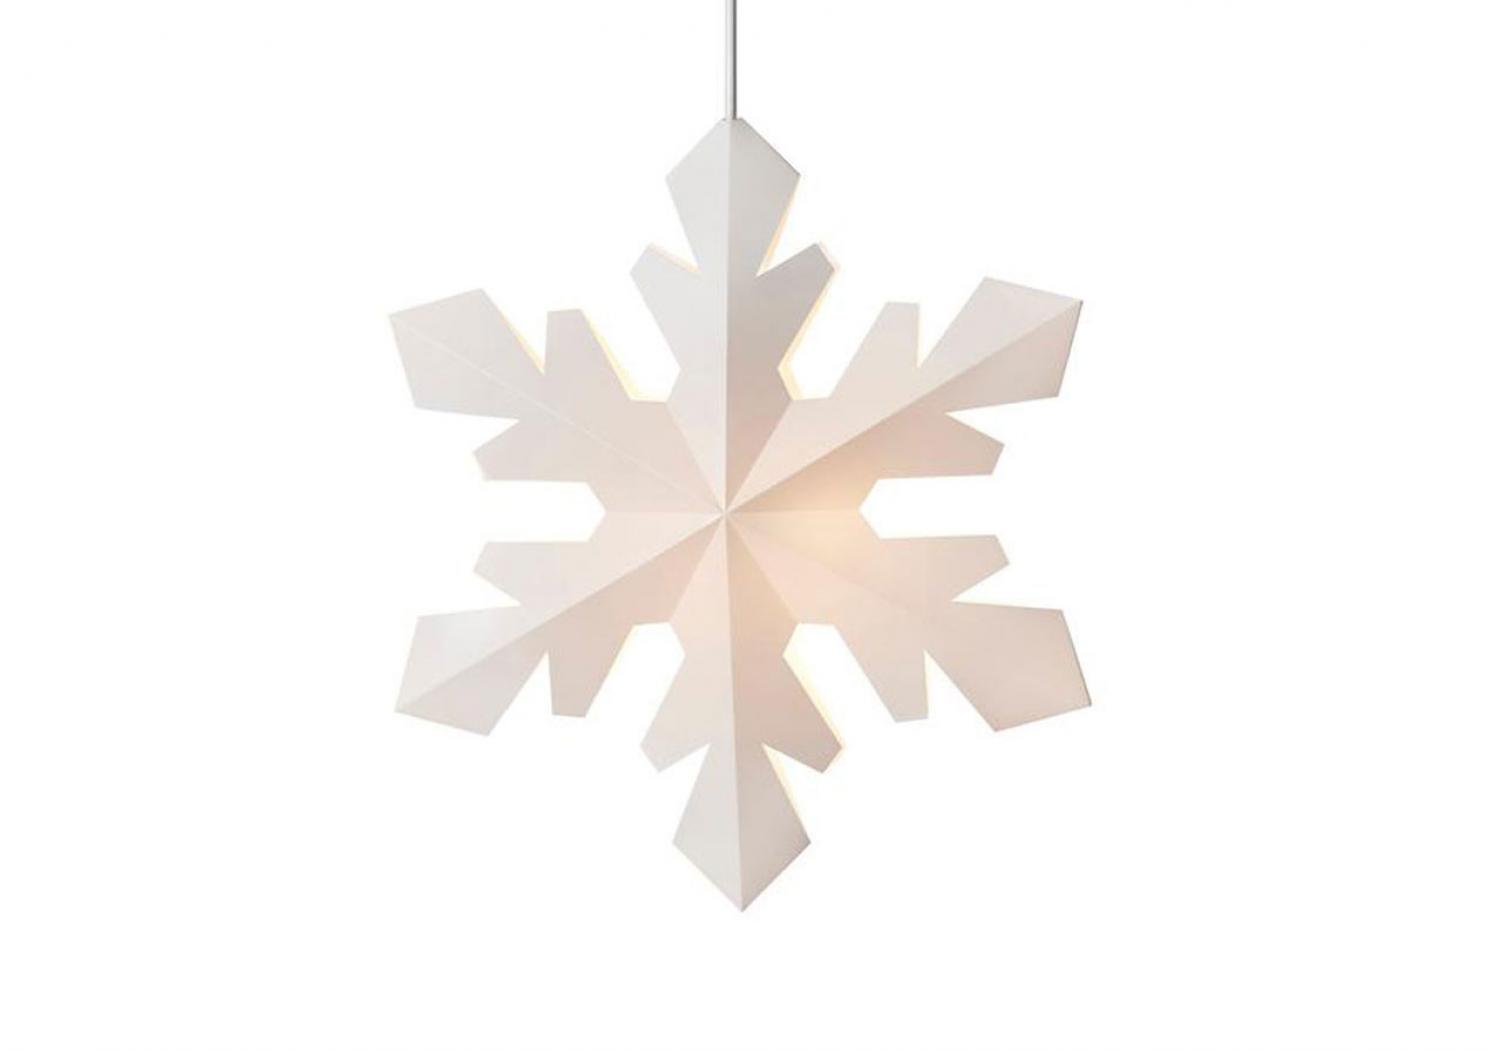 Snowflake Le Klint | The love & Light Project